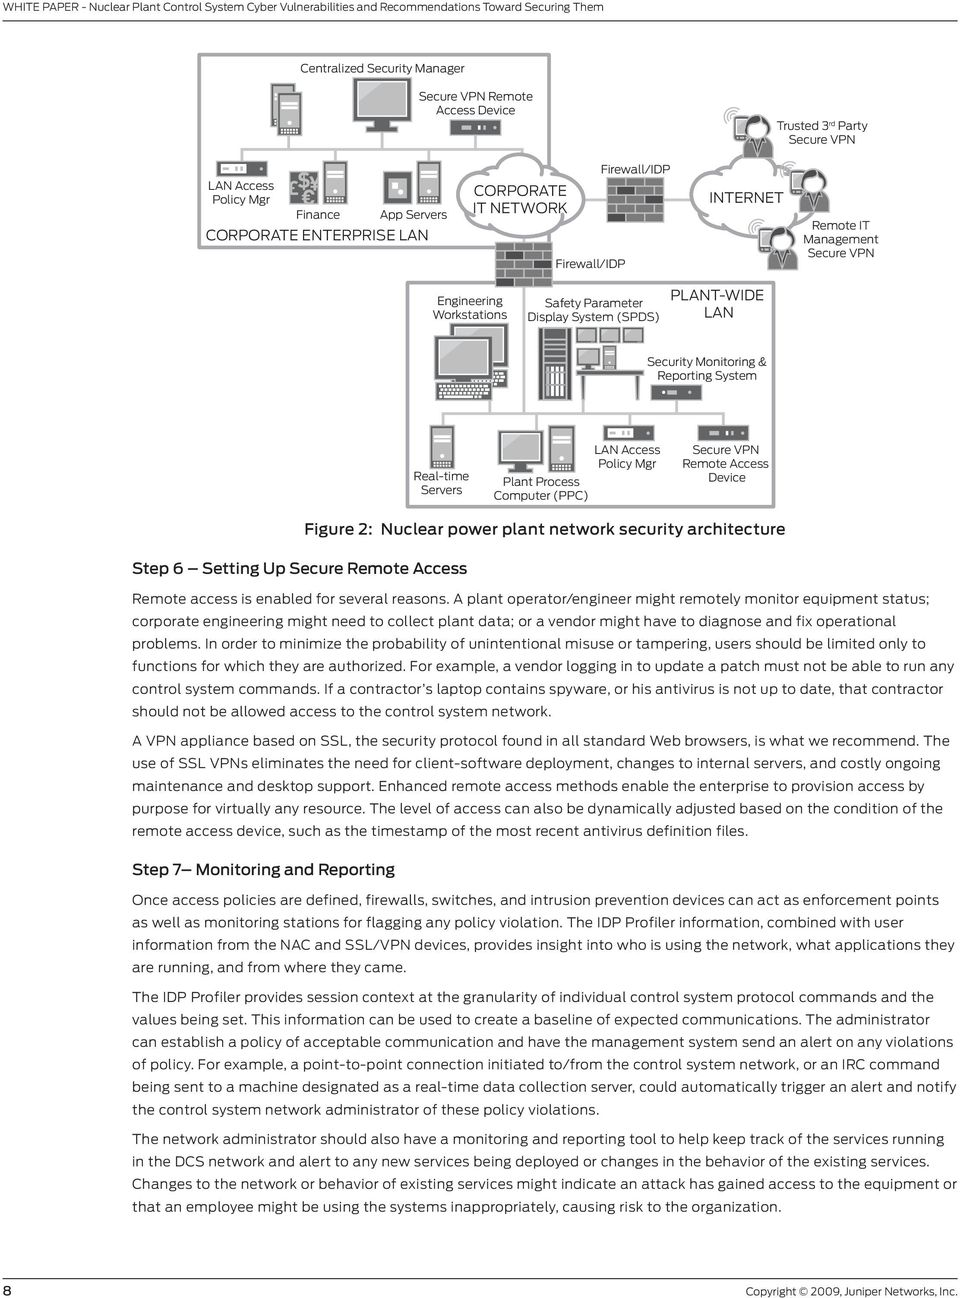 Process Computer (PPC) LAN Access Policy Mgr Secure VPN Remote Access Device Figure 2: Nuclear power plant network security architecture Step 6 Setting Up Secure Remote Access Remote access is